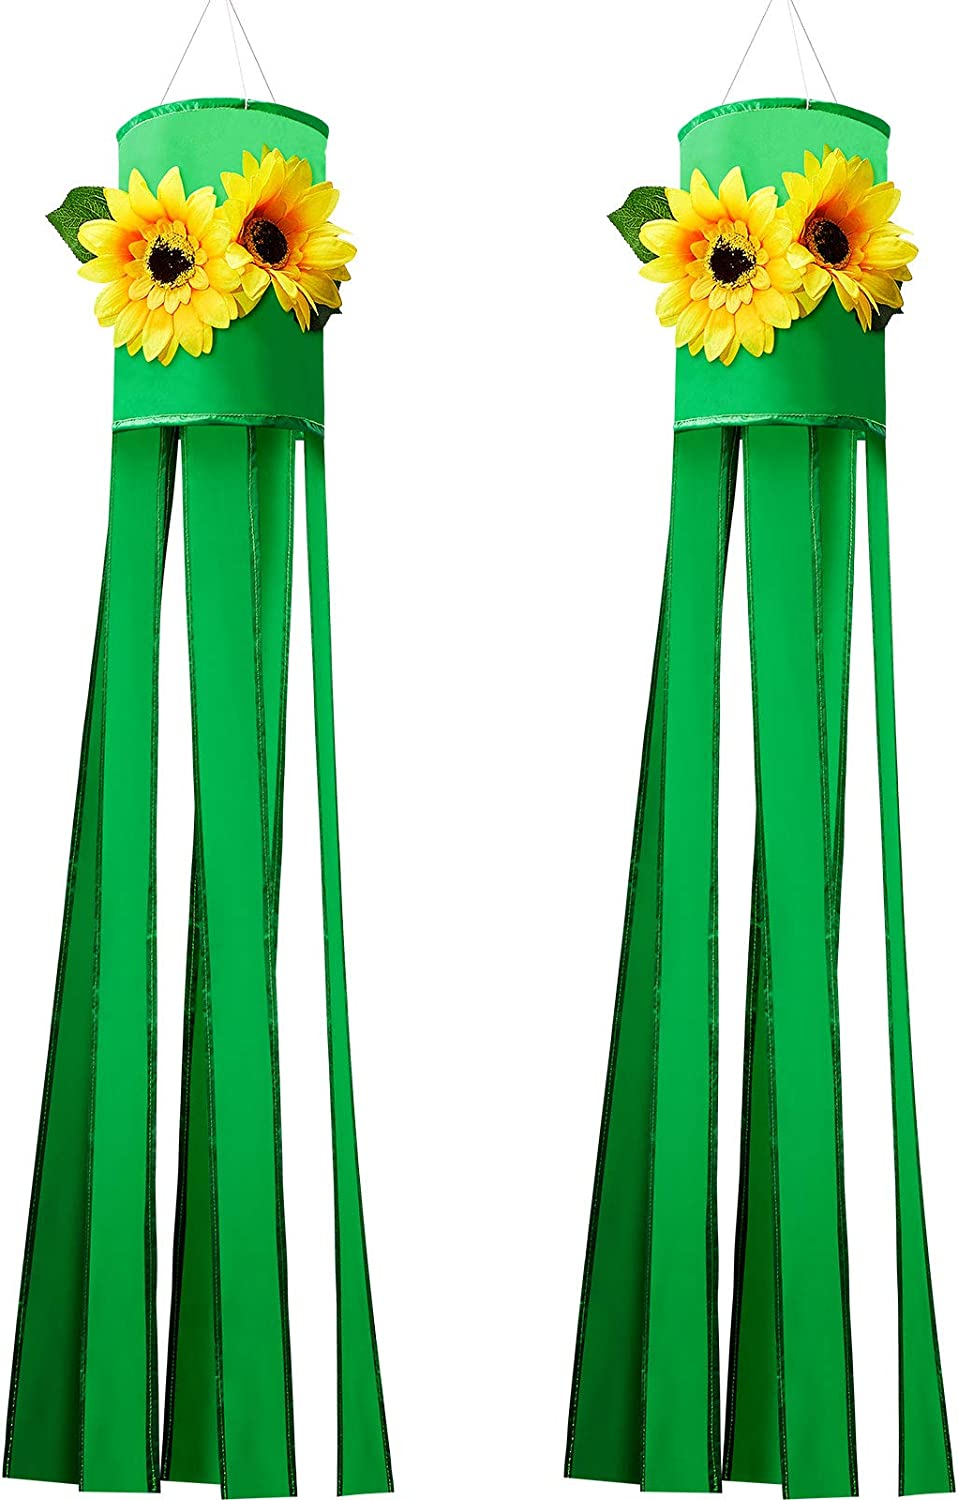 2 Pieces Sunflower 3D Windsock Outdoor Hanging Windsock Sunflower Themed Holiday Decorative Windsock with Hanging Clip for Indoor Balcony Outdoor Yard Lawn Garden Party, 40 Inch